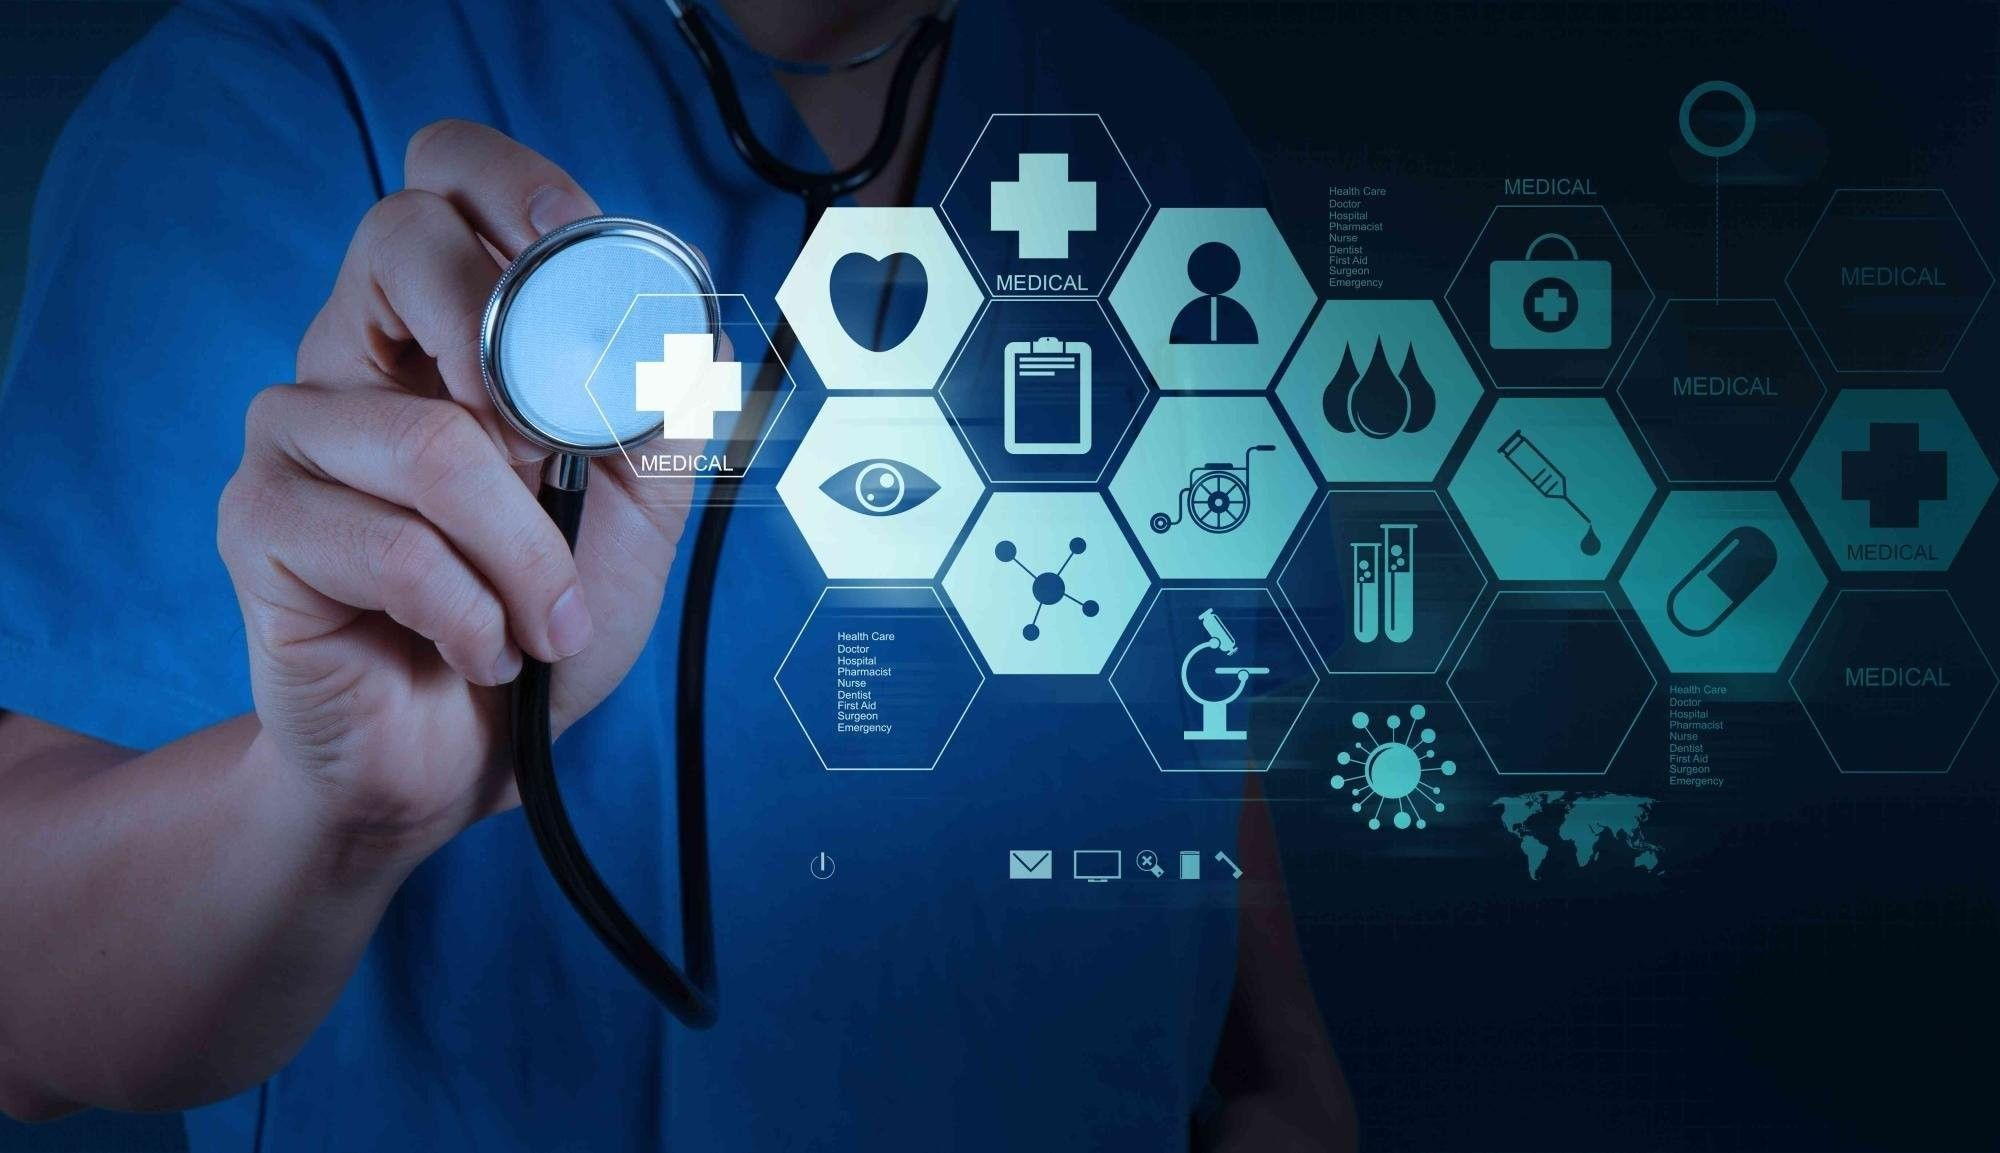 Health Care Medical Wallpapers